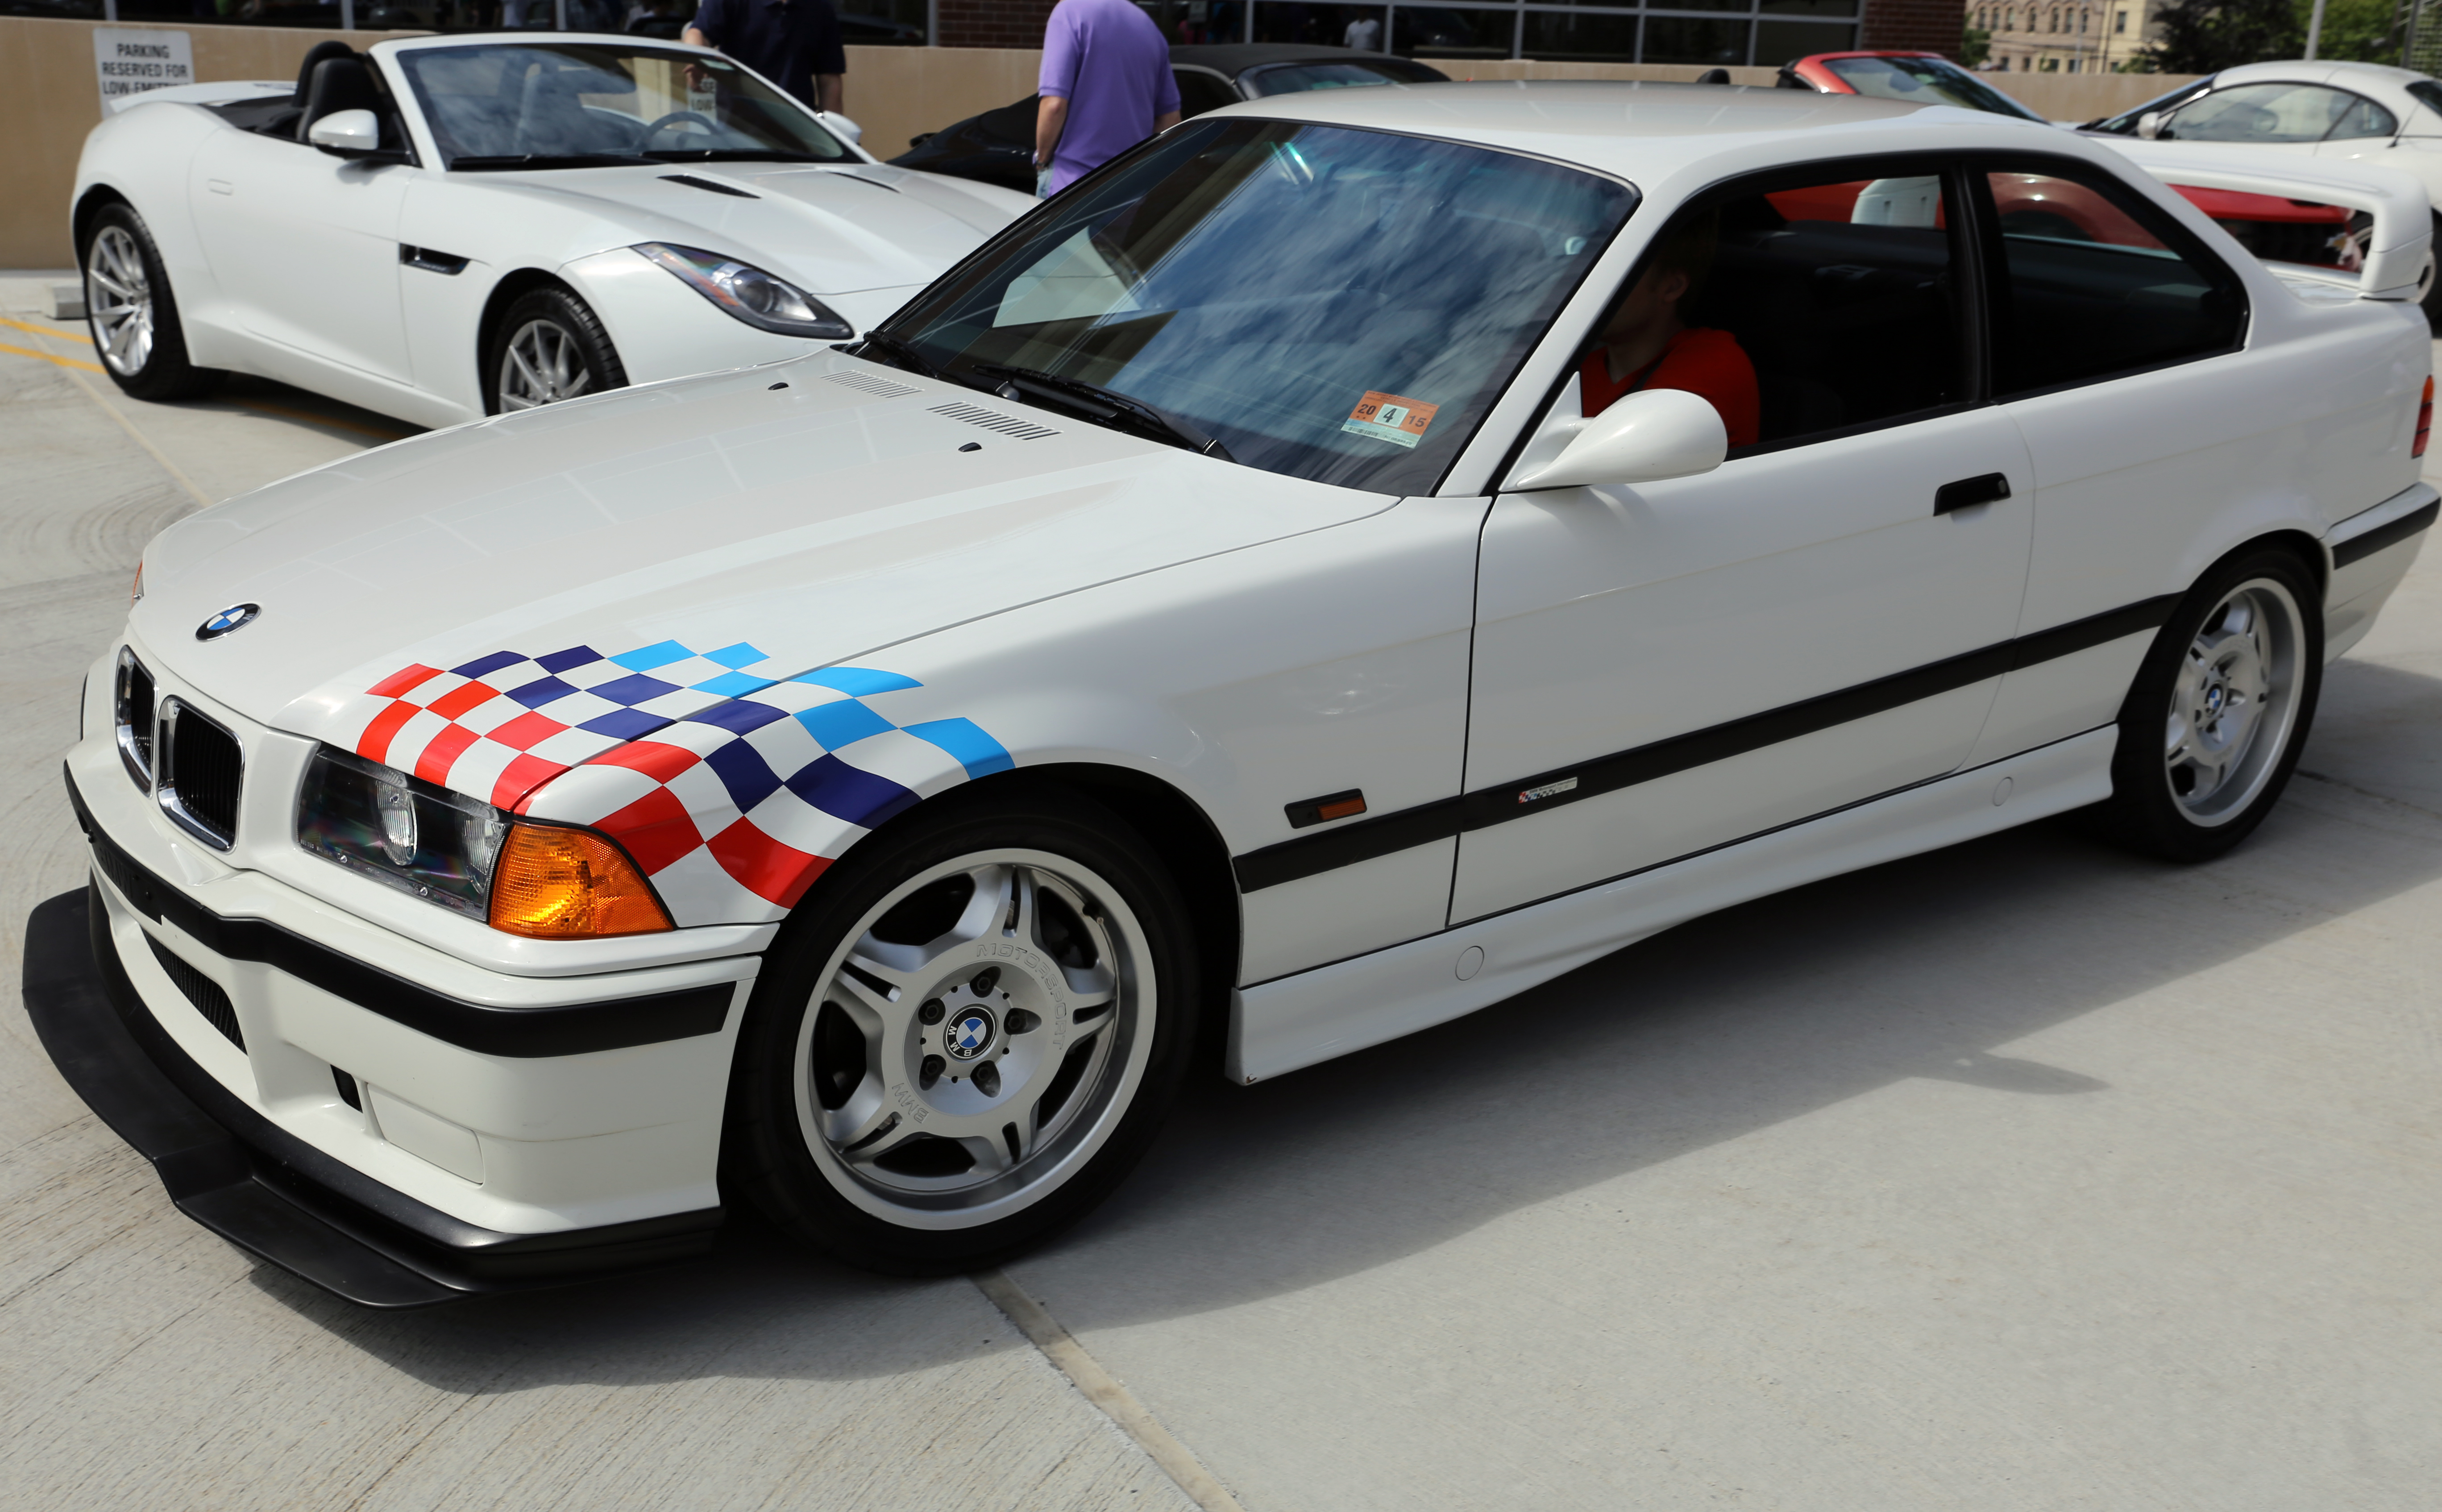 1998 Bmw M3 cabrio (e36) – pictures, information and specs - Auto ...